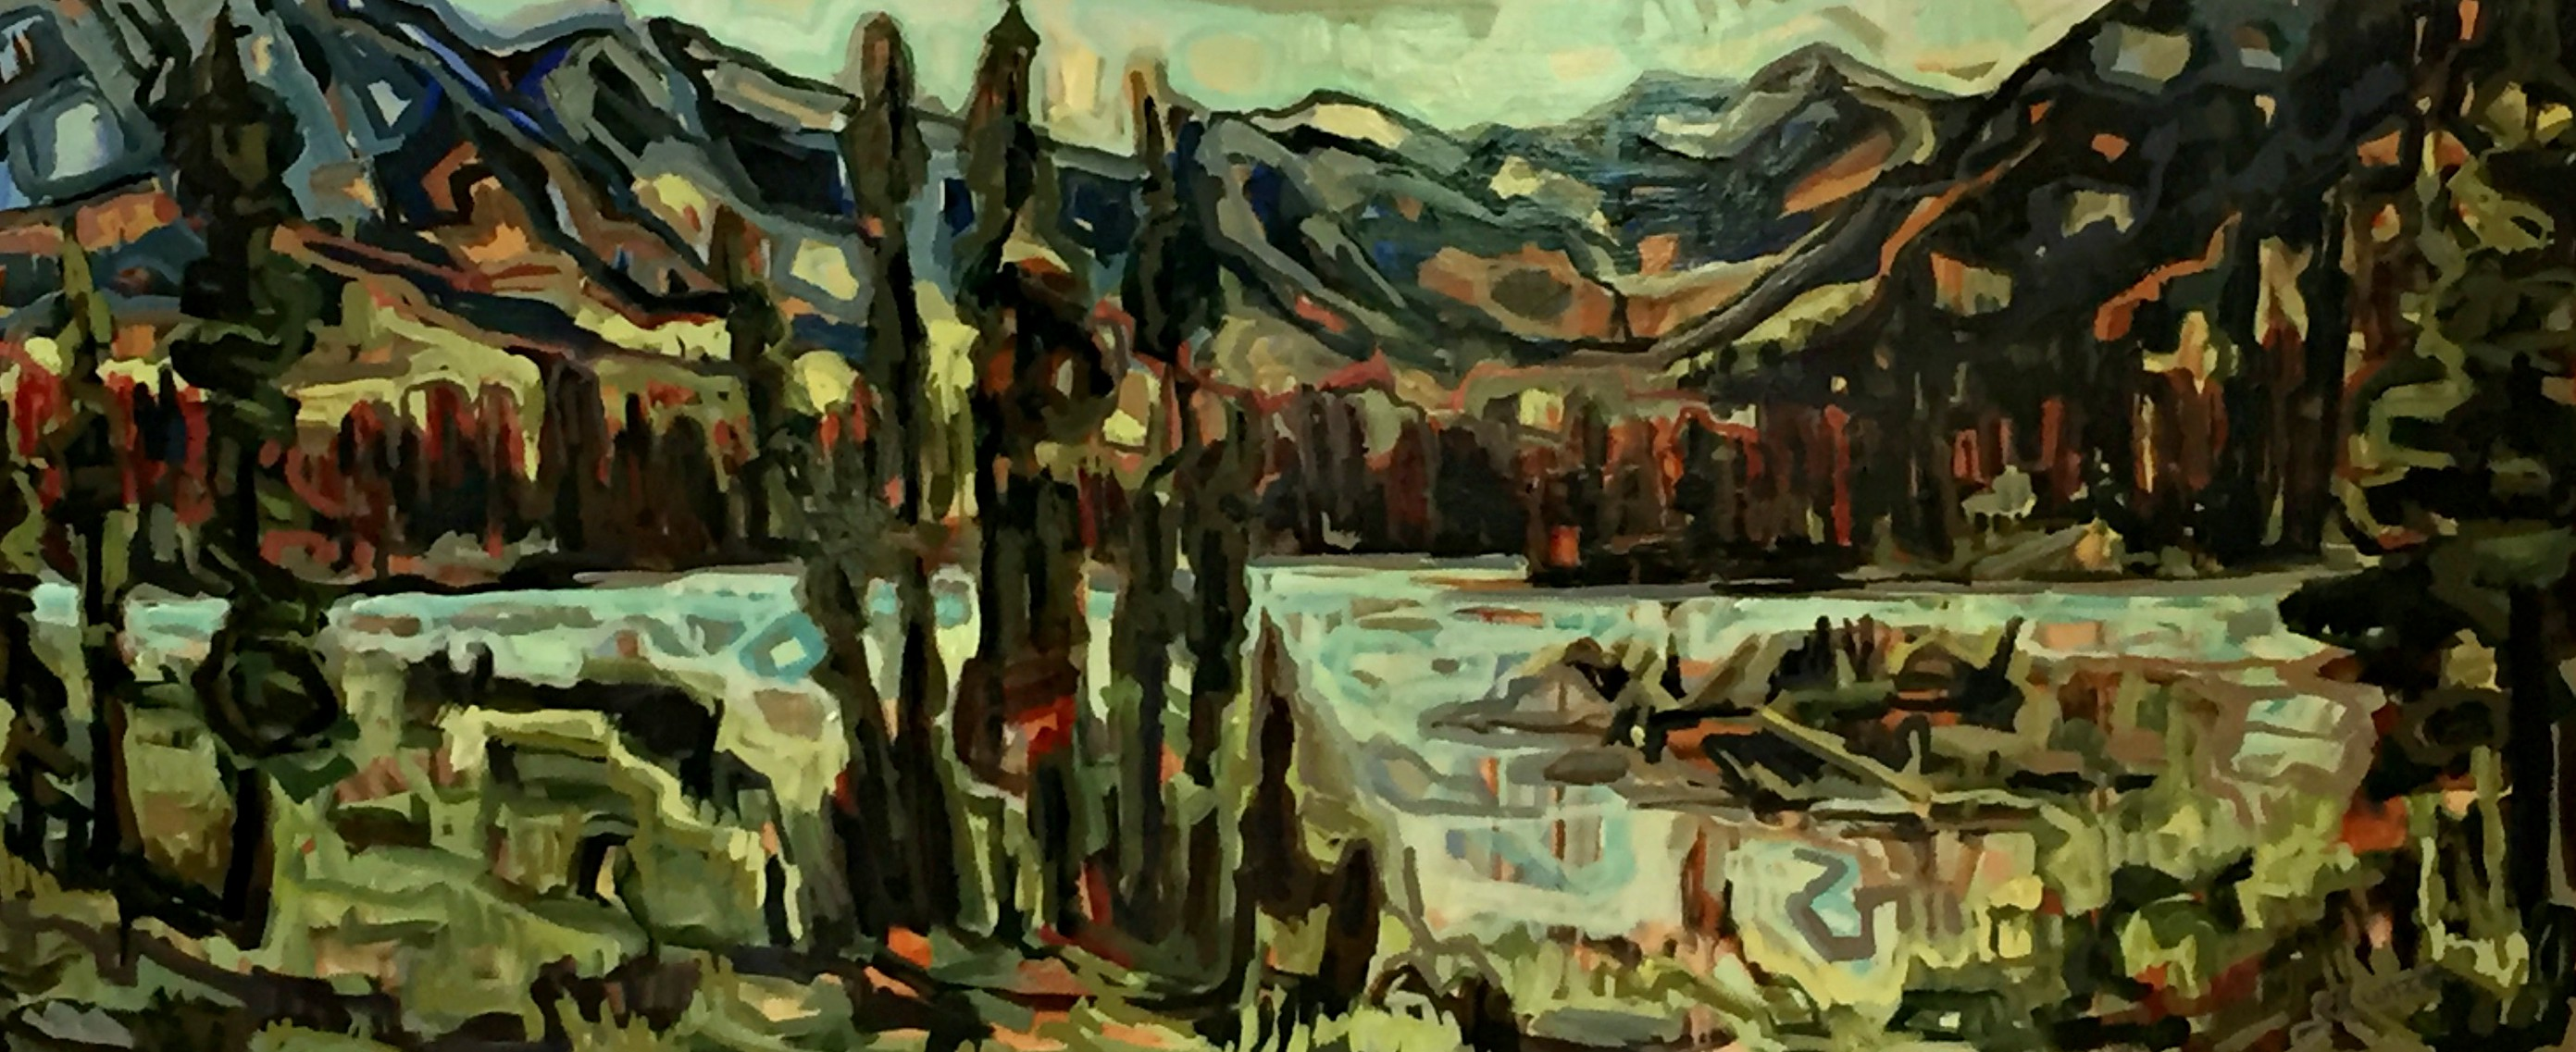 Simpson Monument, acrylic painting by Sandy Kunze | Effusion Art Gallery + Cast Glass Studio, Invermere BC